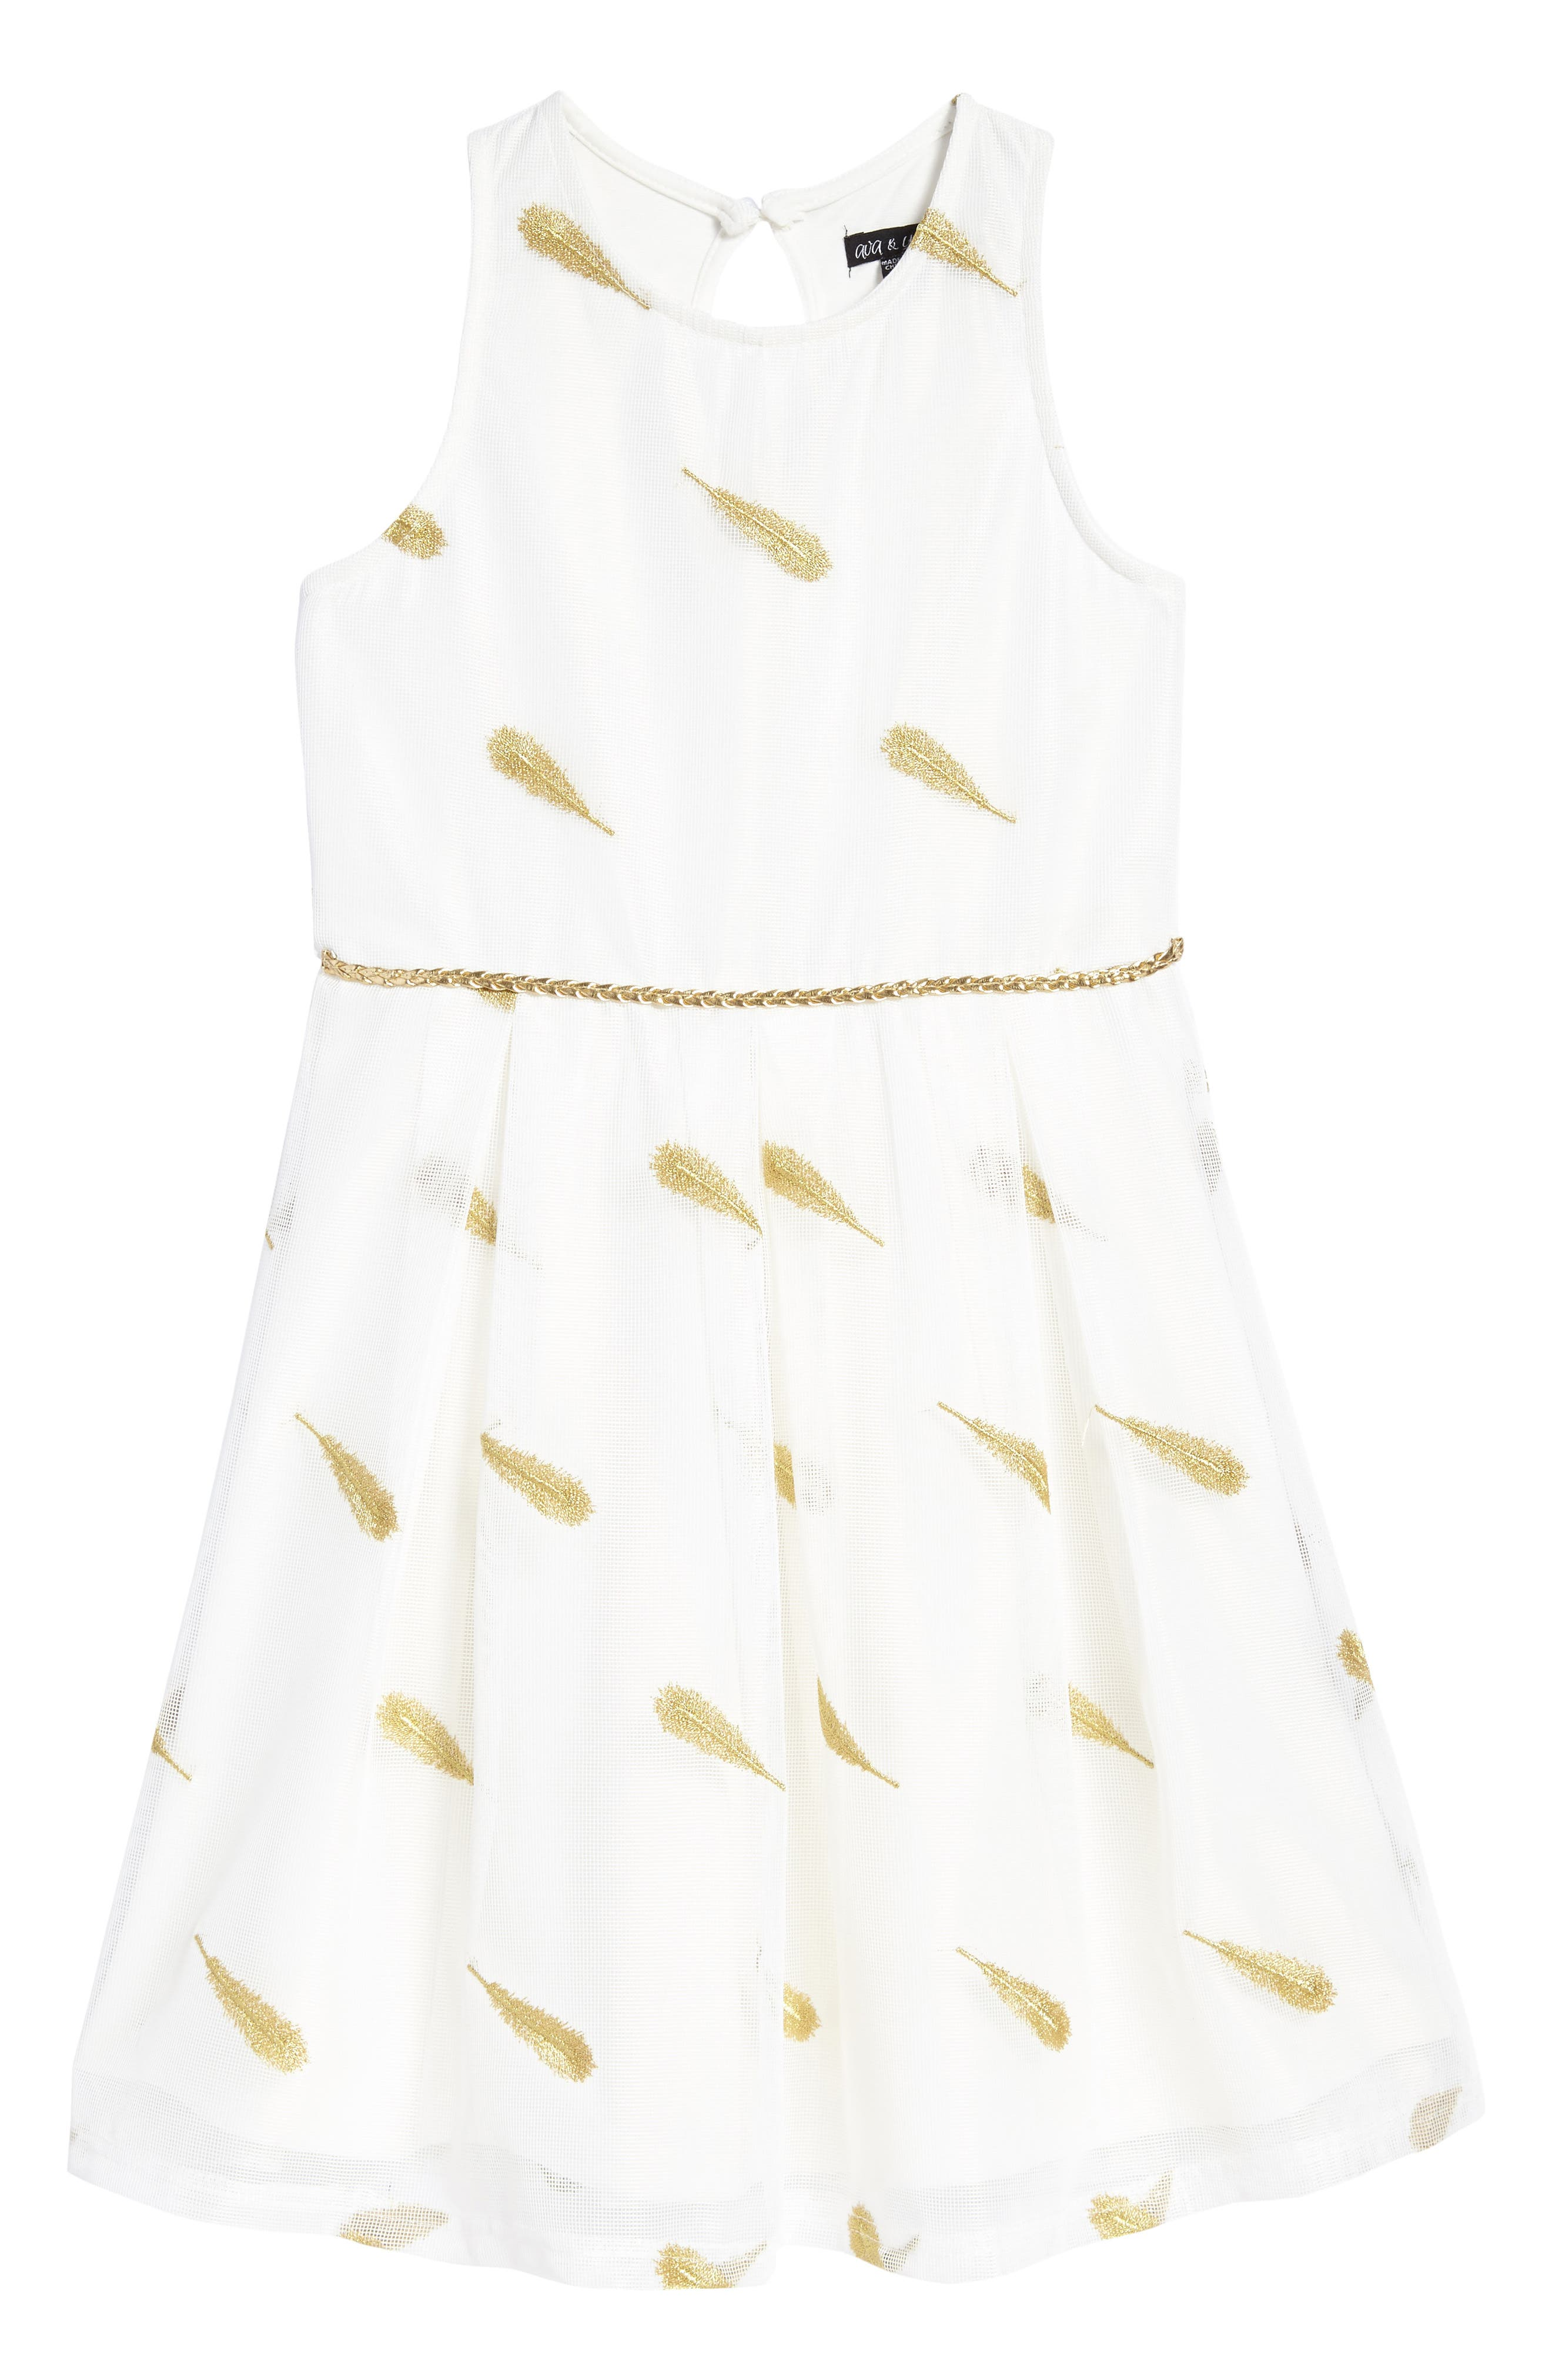 Main Image - Ava & Yelly Feather Embroidered Dress (Big Girls)